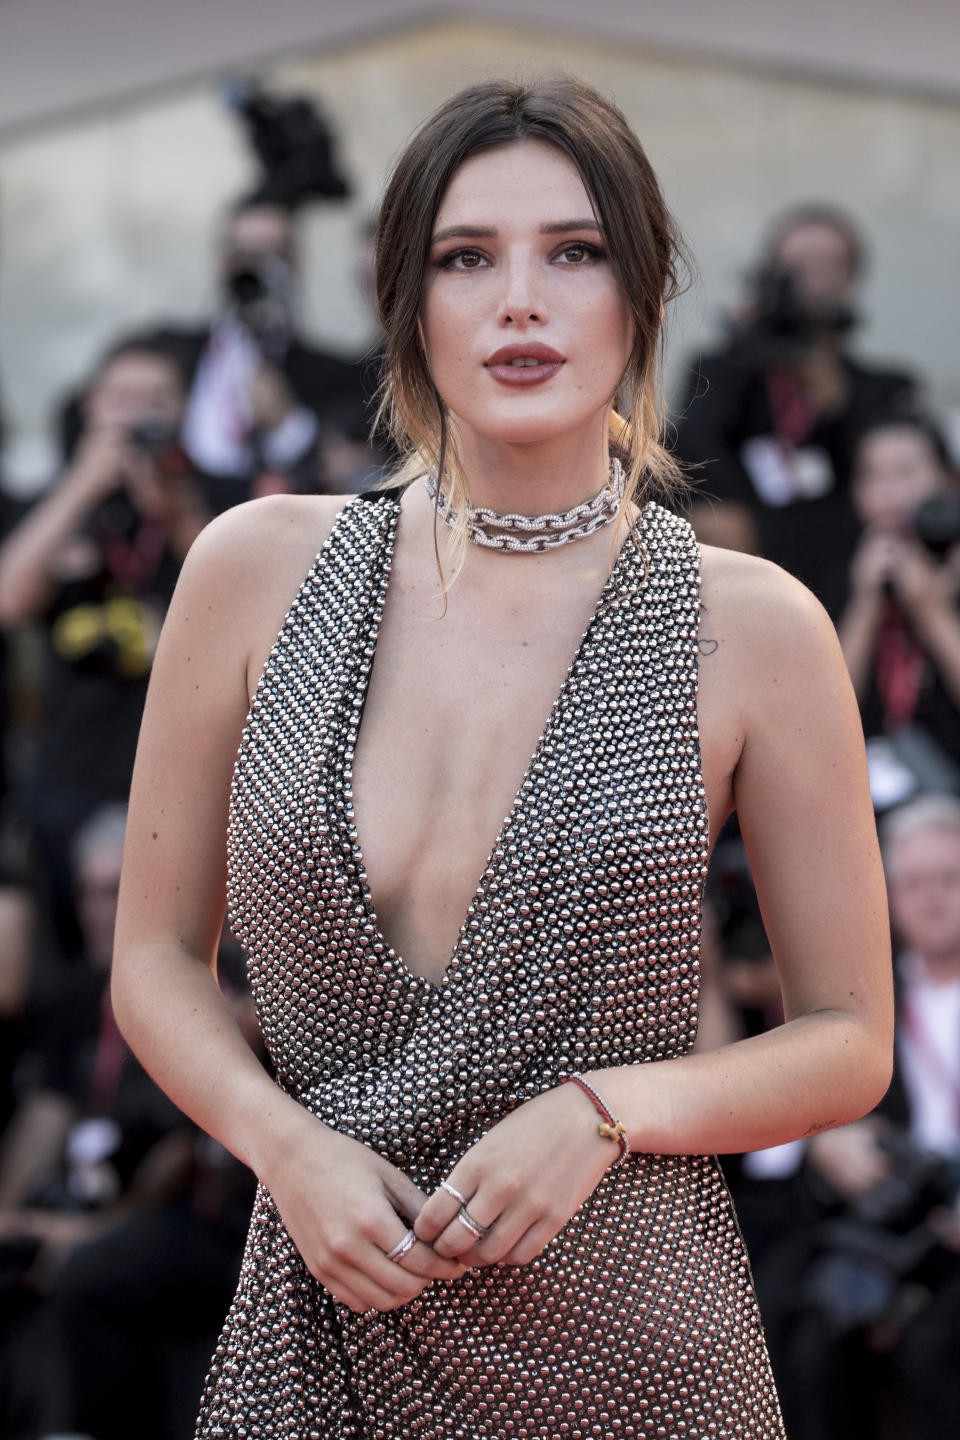 """VENICE, ITALY - AUGUST 31: Bella Thorne walks the red carpet ahead of the """"Joker"""" screening during the 76th Venice Film Festival at Sala Grande on August 31, 2019 in Venice, Italy. (Photo by Alessandra Benedetti - Corbis/Corbis via Getty Images)"""